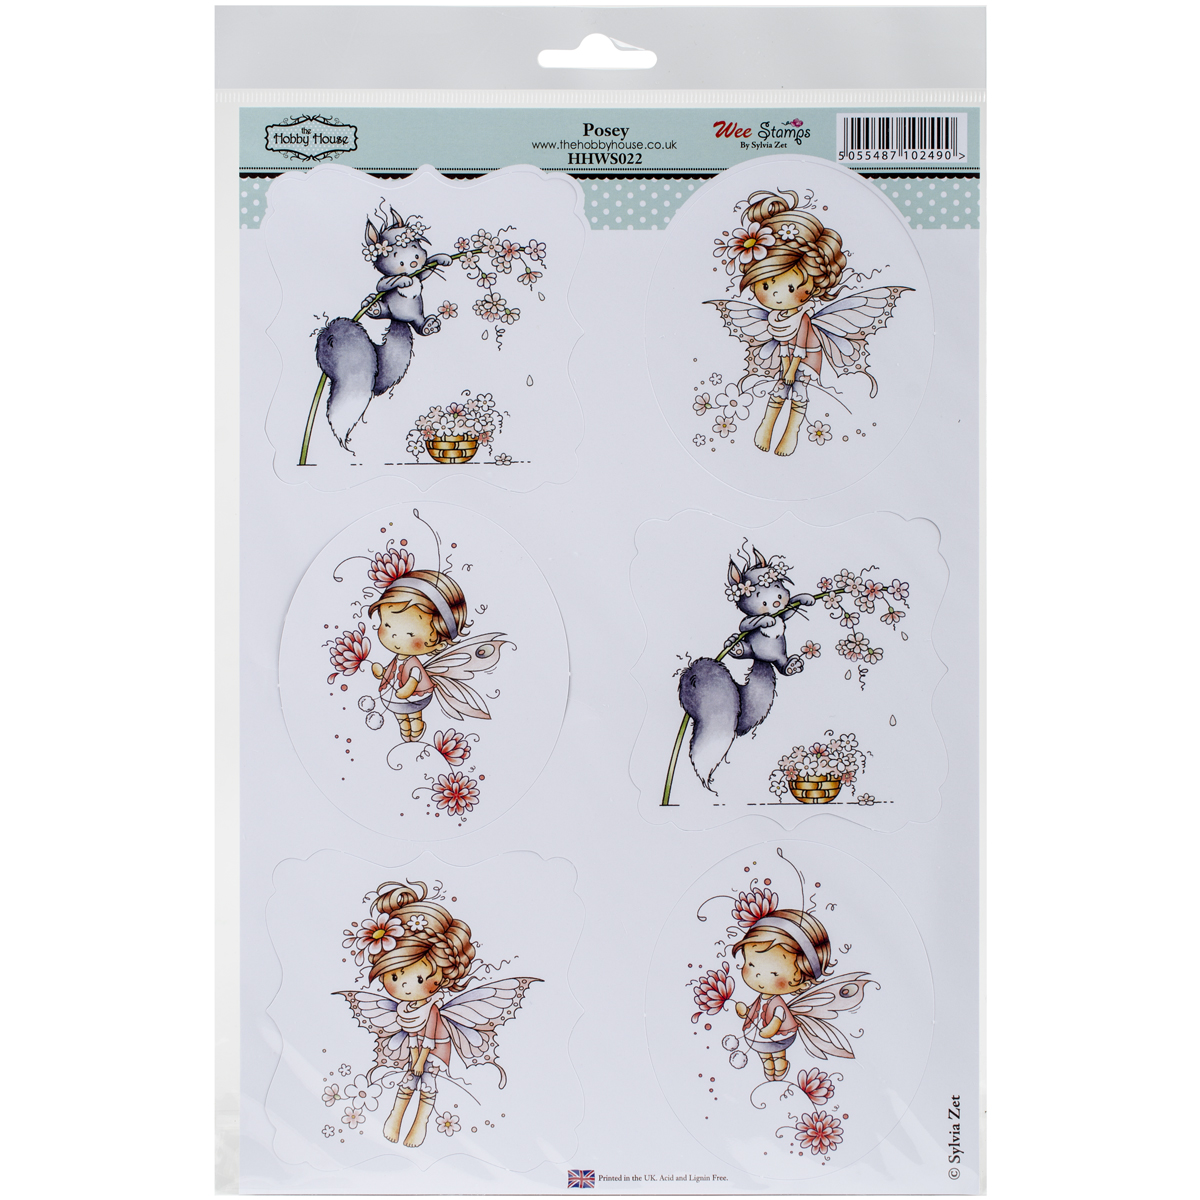 "Wee Stamps Topper Sheet 8.3""X12.2""  -Posey"